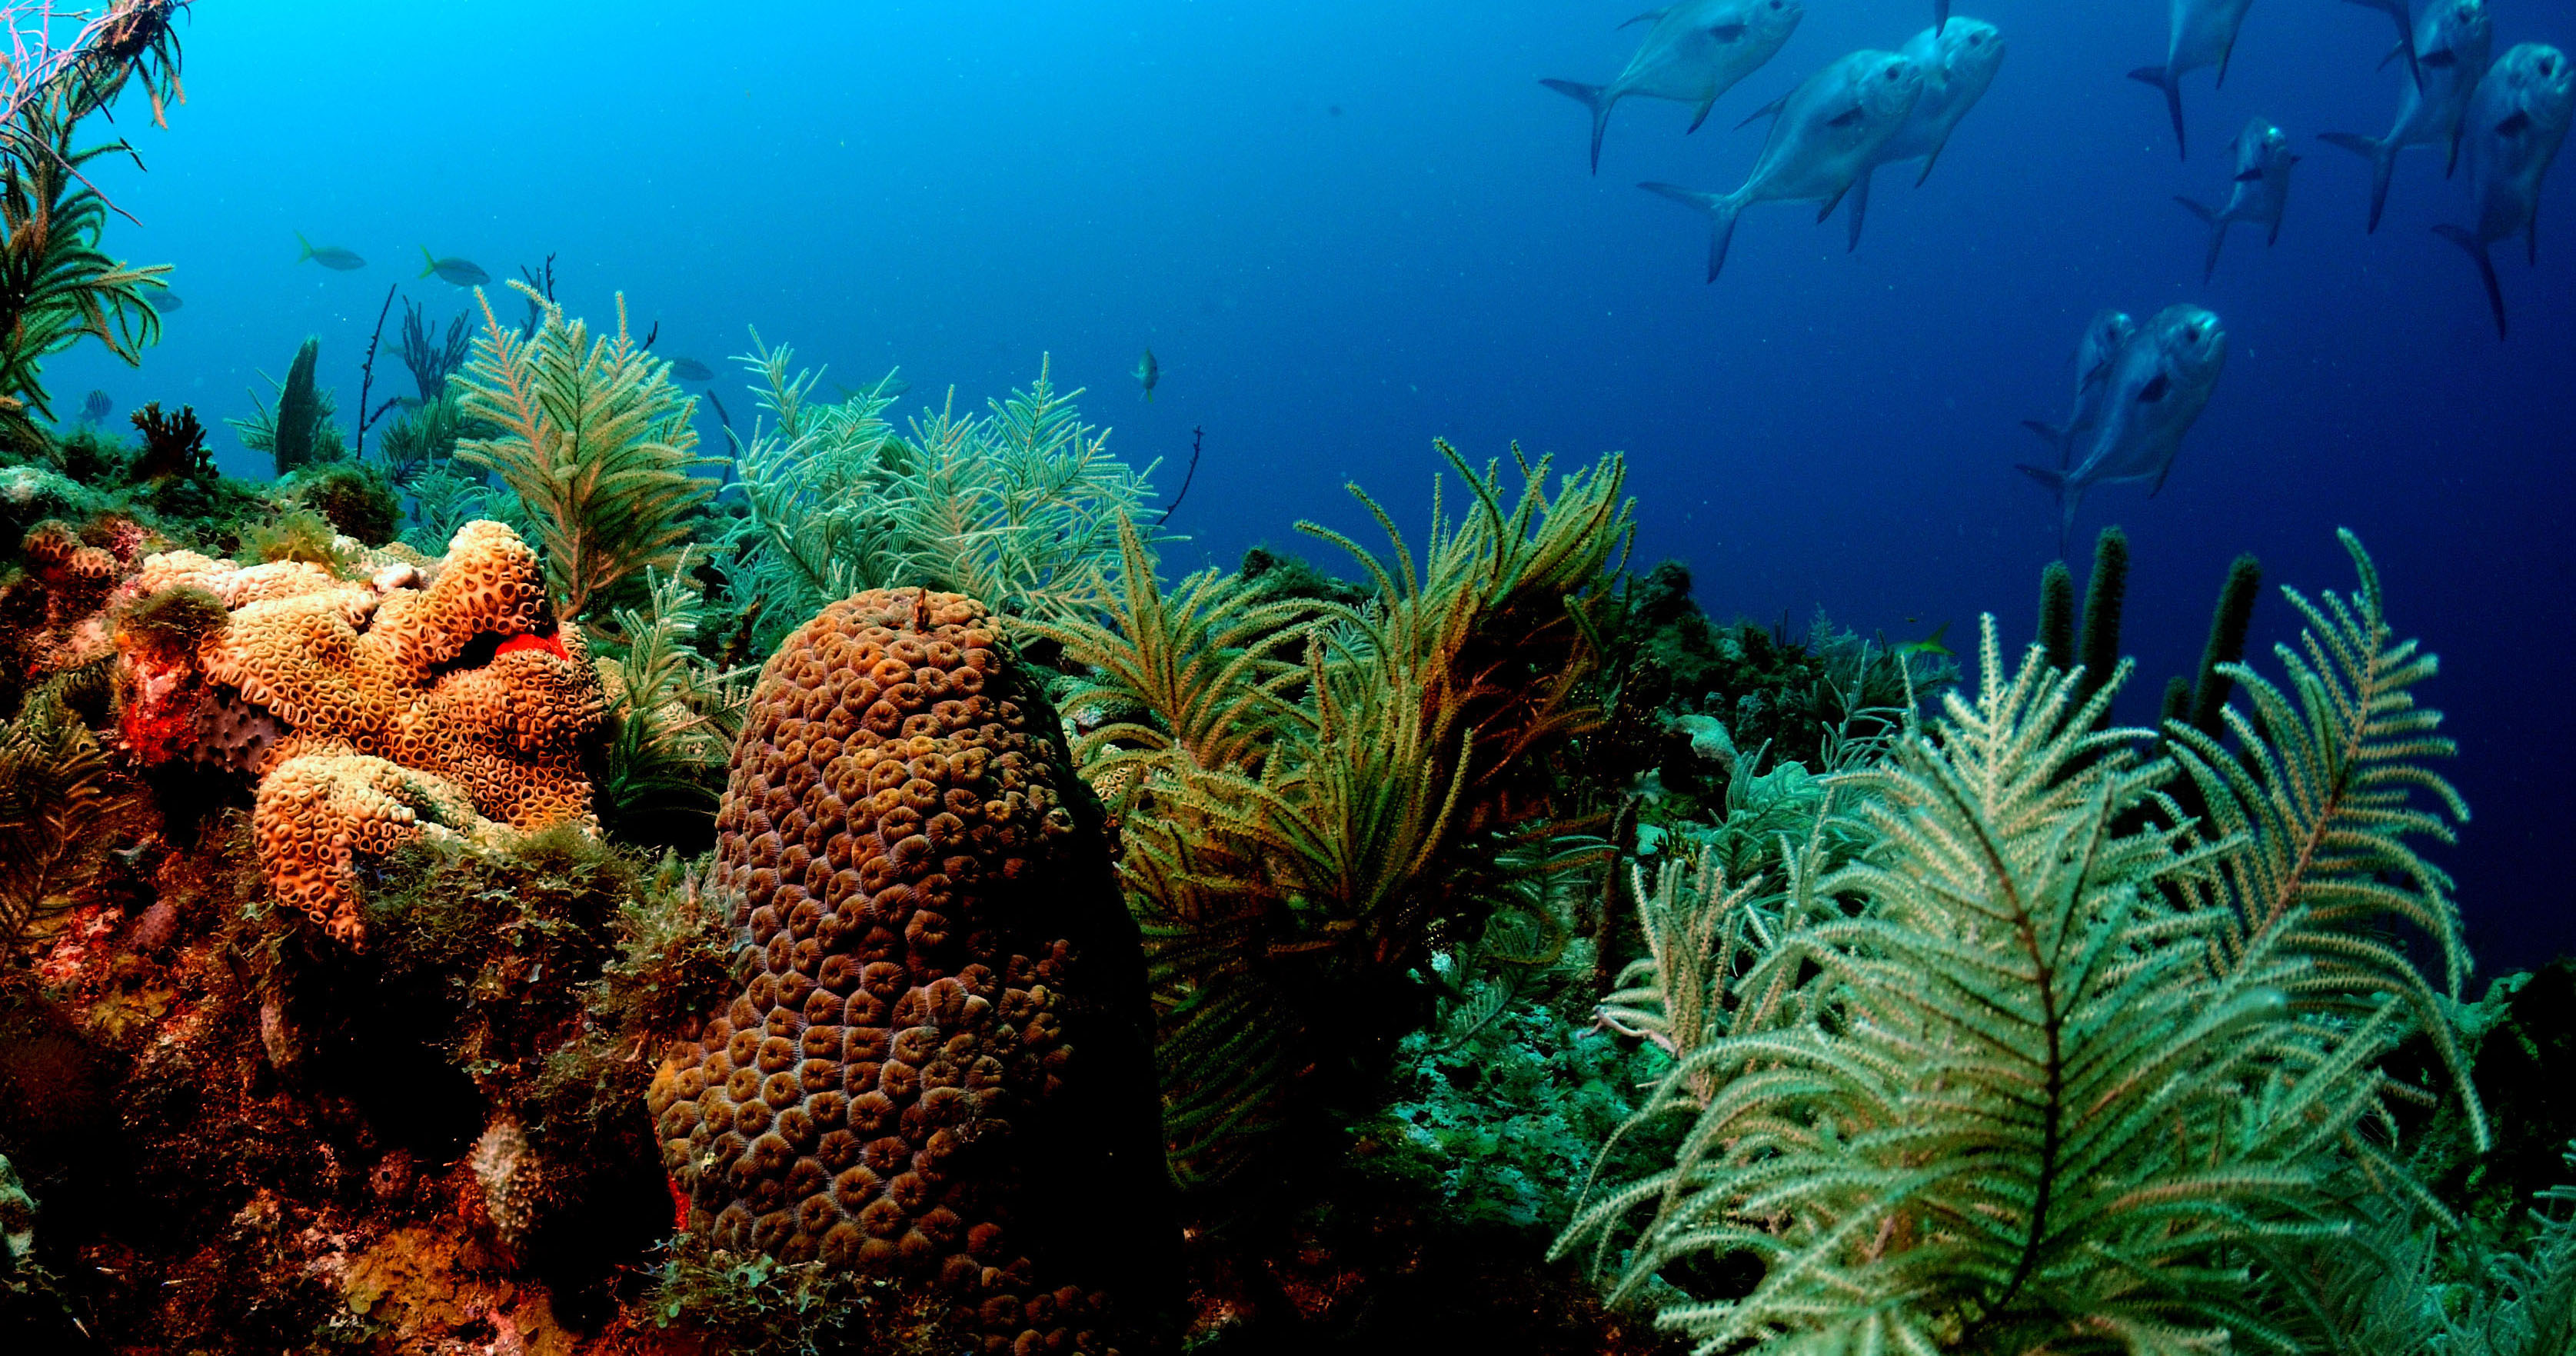 NOAA Coral Reef Information System - Glossary of Terminology